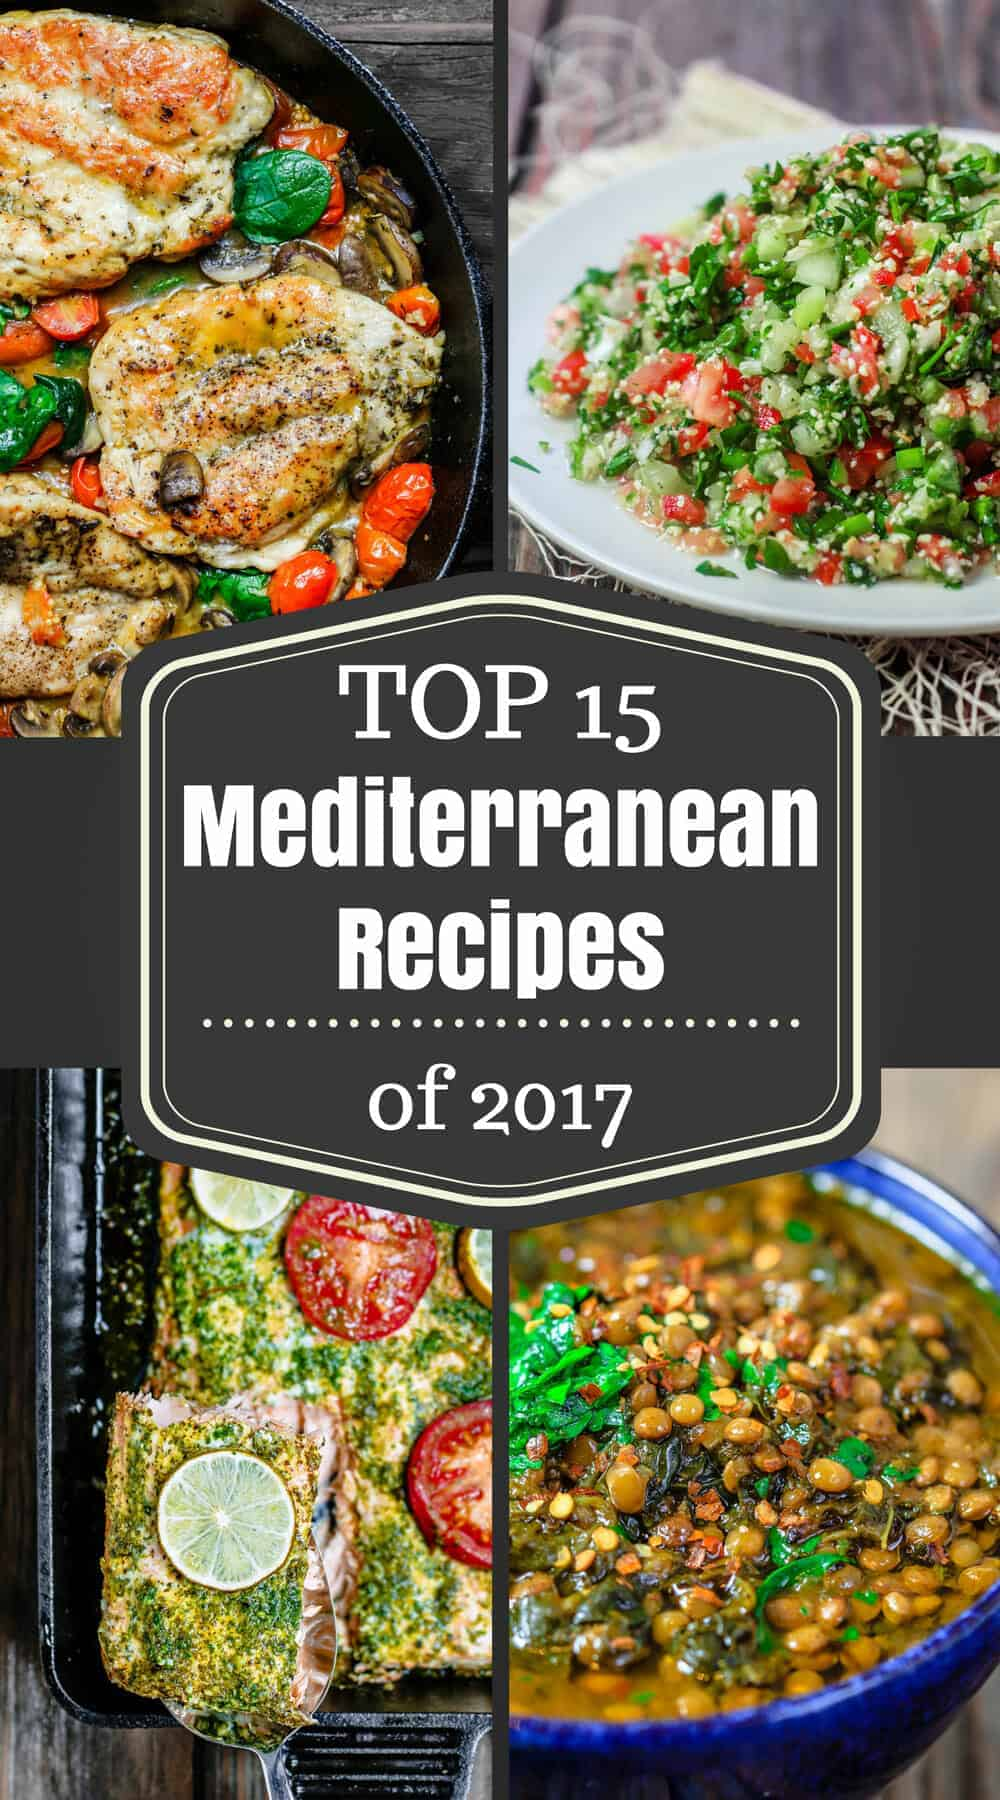 Top 15 Mediterranean Recipes of 2017 | The Mediterranean Dish. If you're looking for amazing Mediterranean recipes and Mediterranean diet foods, this list of 15 recipes is a great place to start. Fool-proof recipes that have been tried by millions of people! From tabouli, to falafel, easy Italian chicken, Greek chicken and fish recipes, lamb and more! There is something for everyone. See them all on TheMediterraneanDish.com #mediterraneanrecipes #mediterraneandiet #mediterraneanfood #mediterraneansalad #kebab #lentils #tabouli